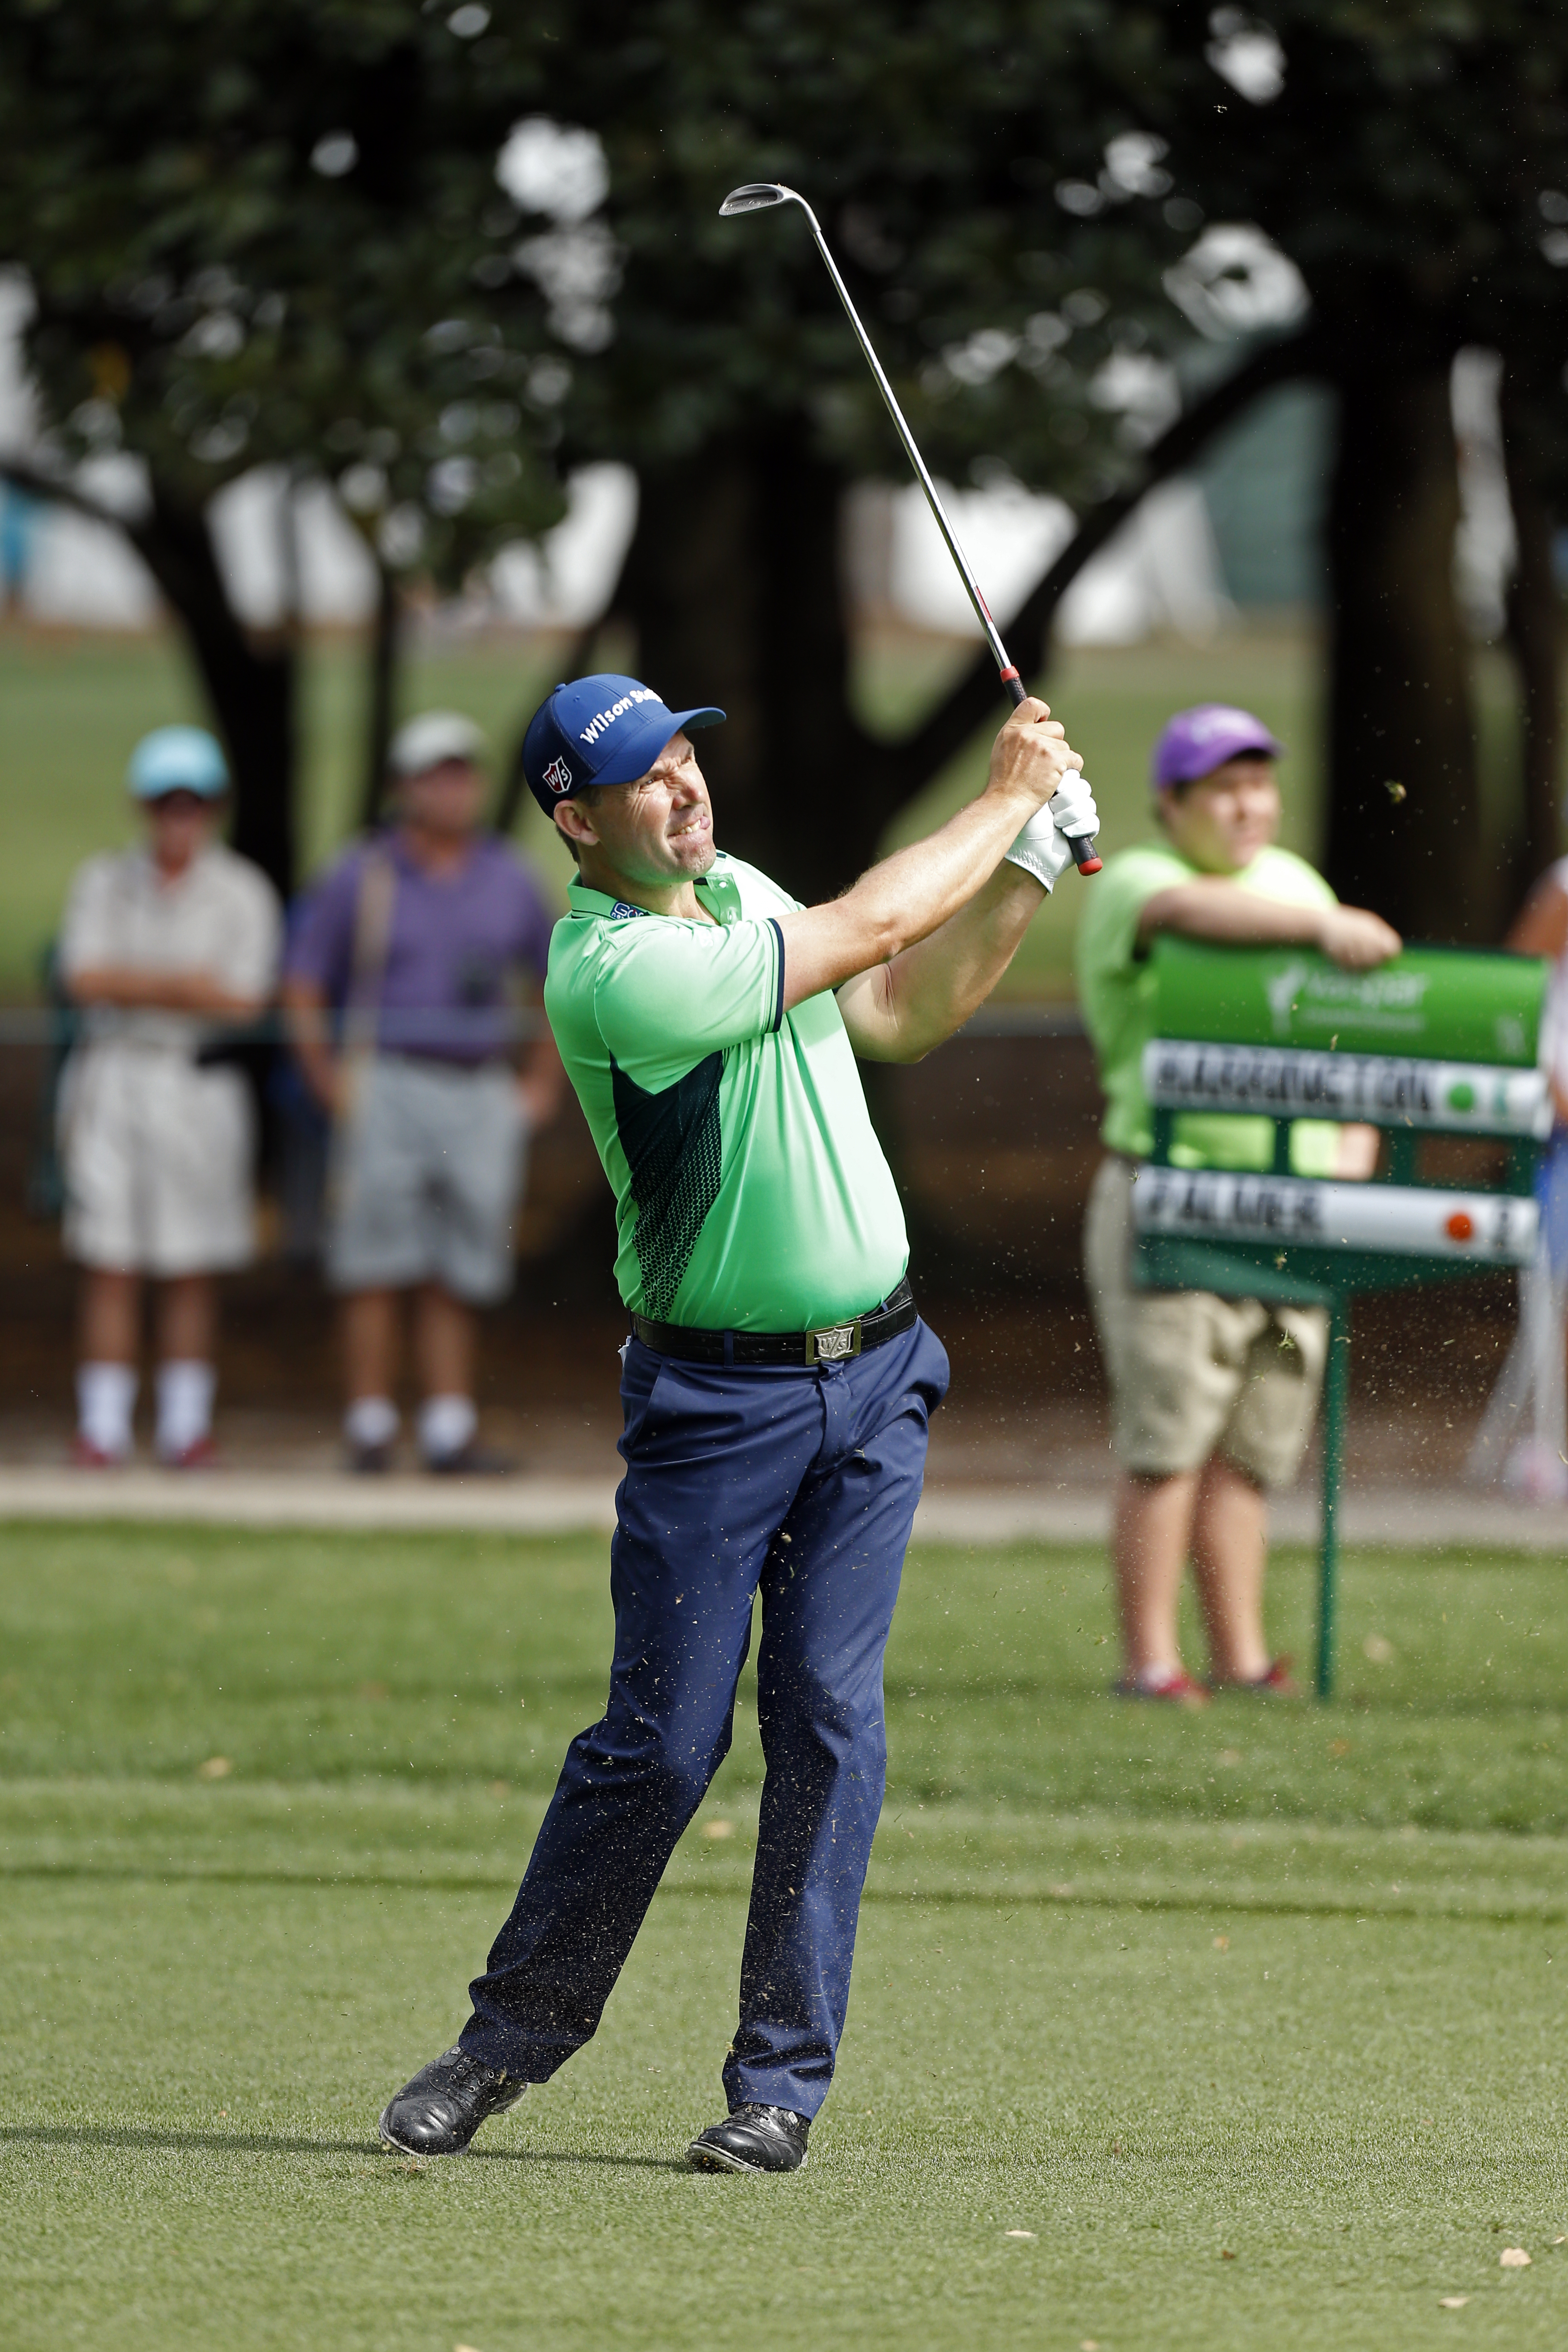 Padraig Harrington, of Ireland, hits a fairway shot on the 10th hole during the third round of the Valspar Championship golf tournament Saturday, March 12, 2016, in Palm Harbor, Fla. (AP Photo/Brian Blanco)